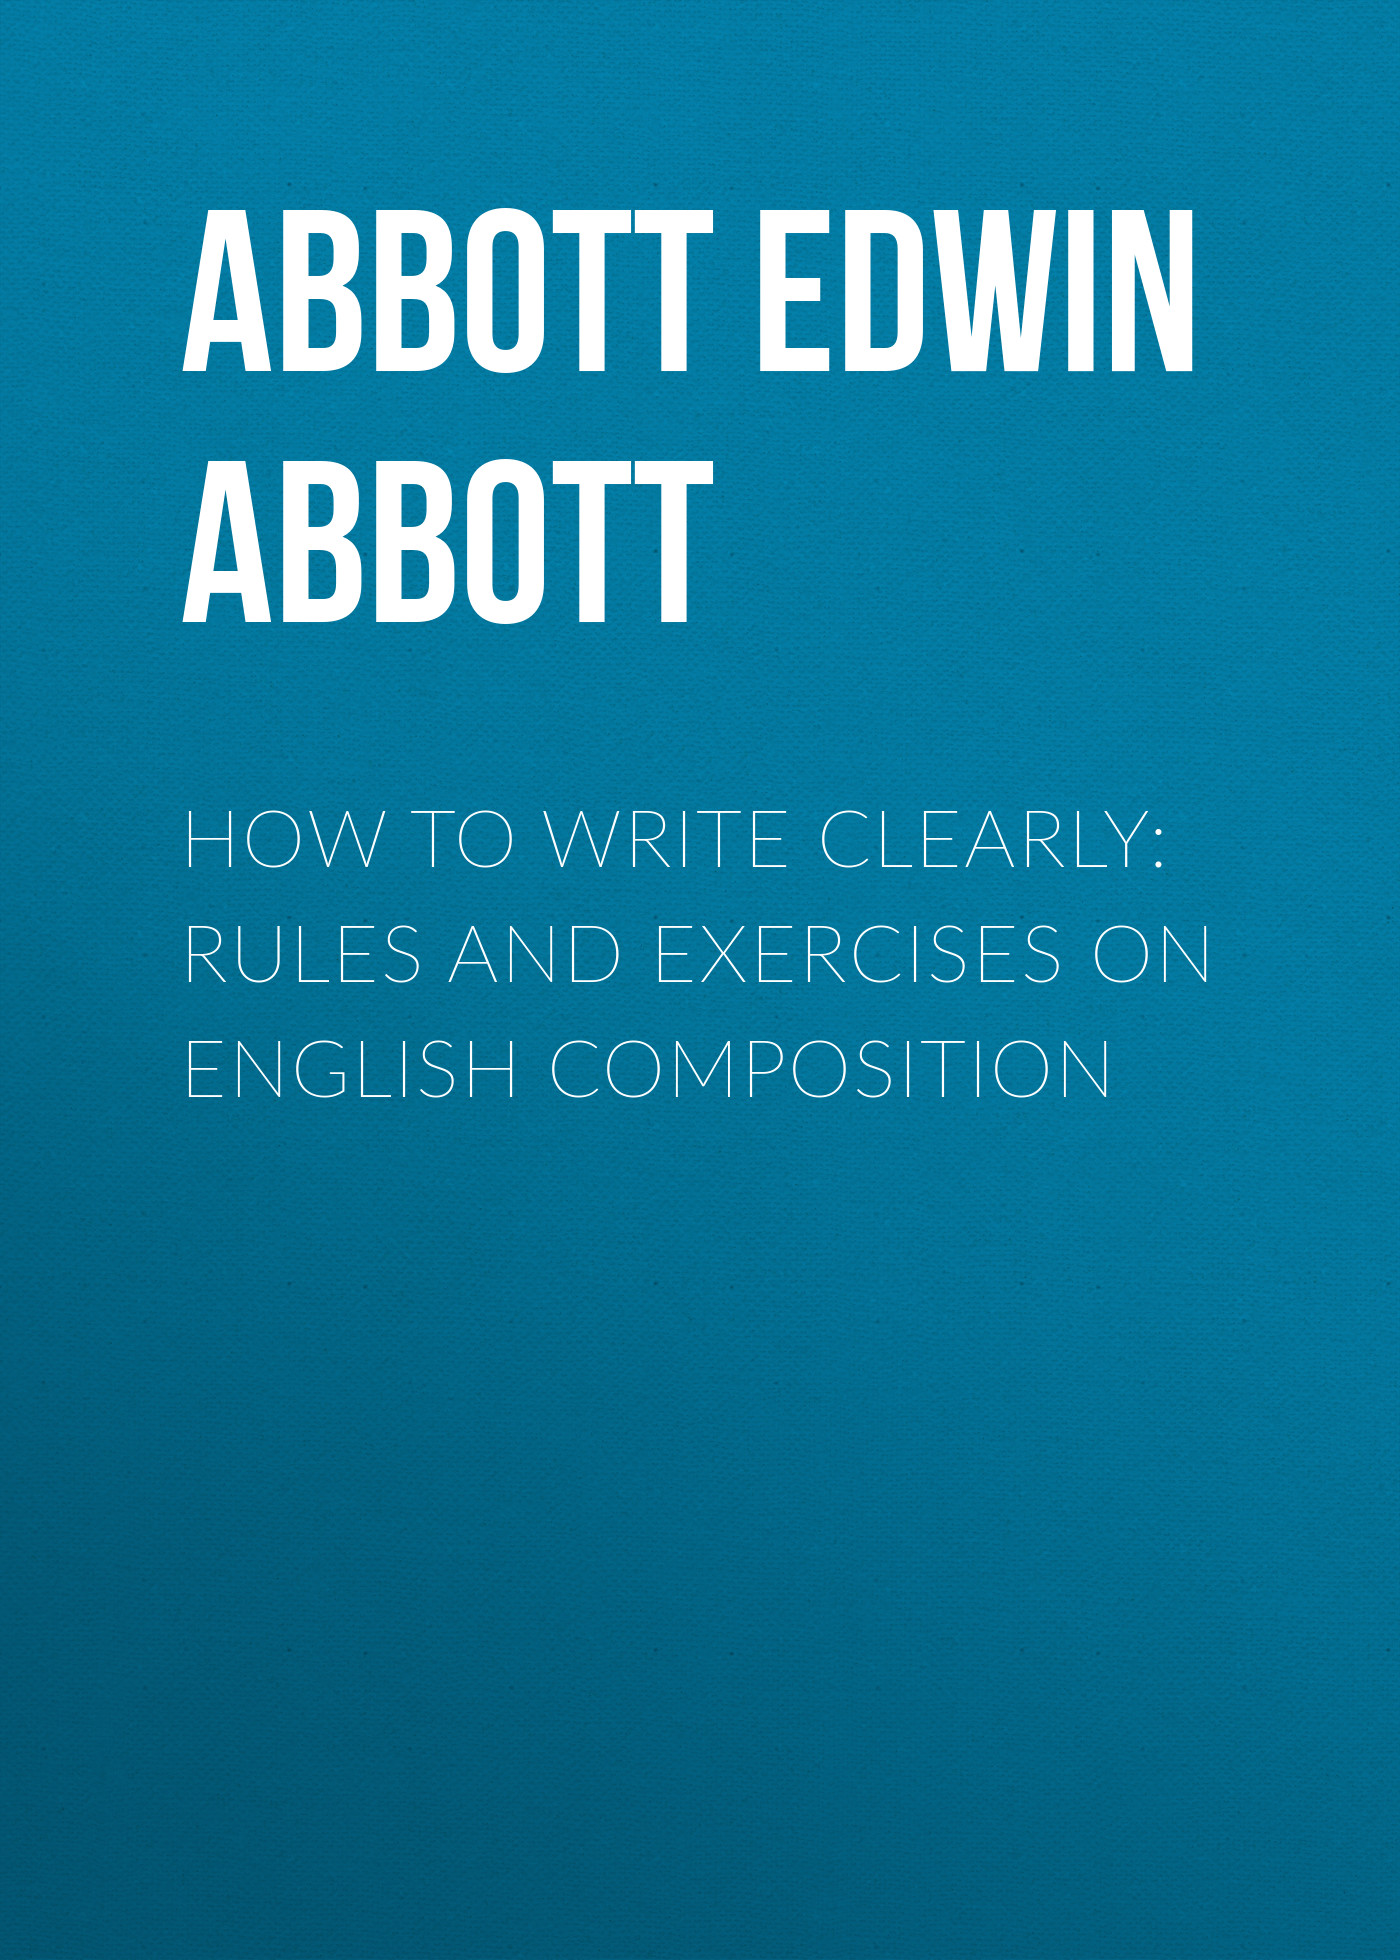 Abbott Edwin Abbott How to Write Clearly: Rules and Exercises on English Composition abbott police politics